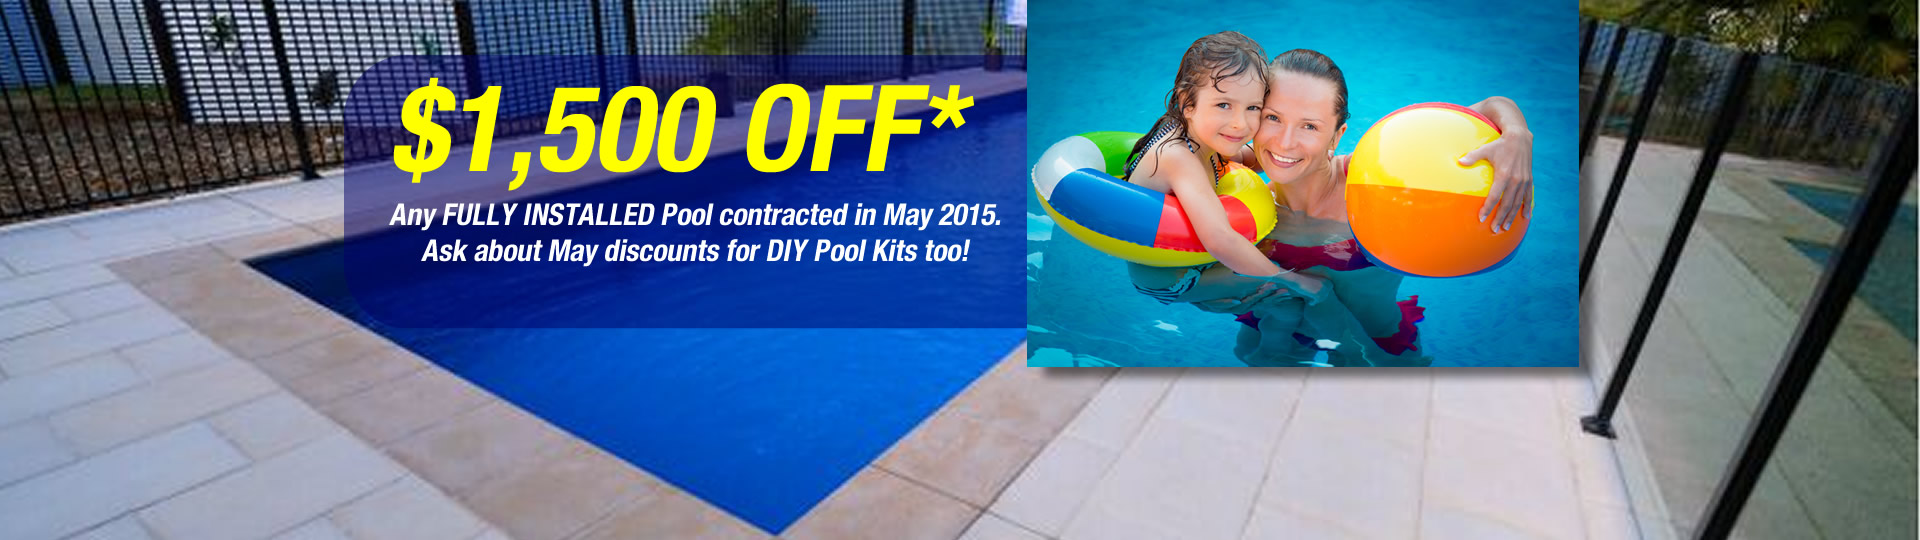 Fibreglass Pools Easiest And Cheapest Way To Own A